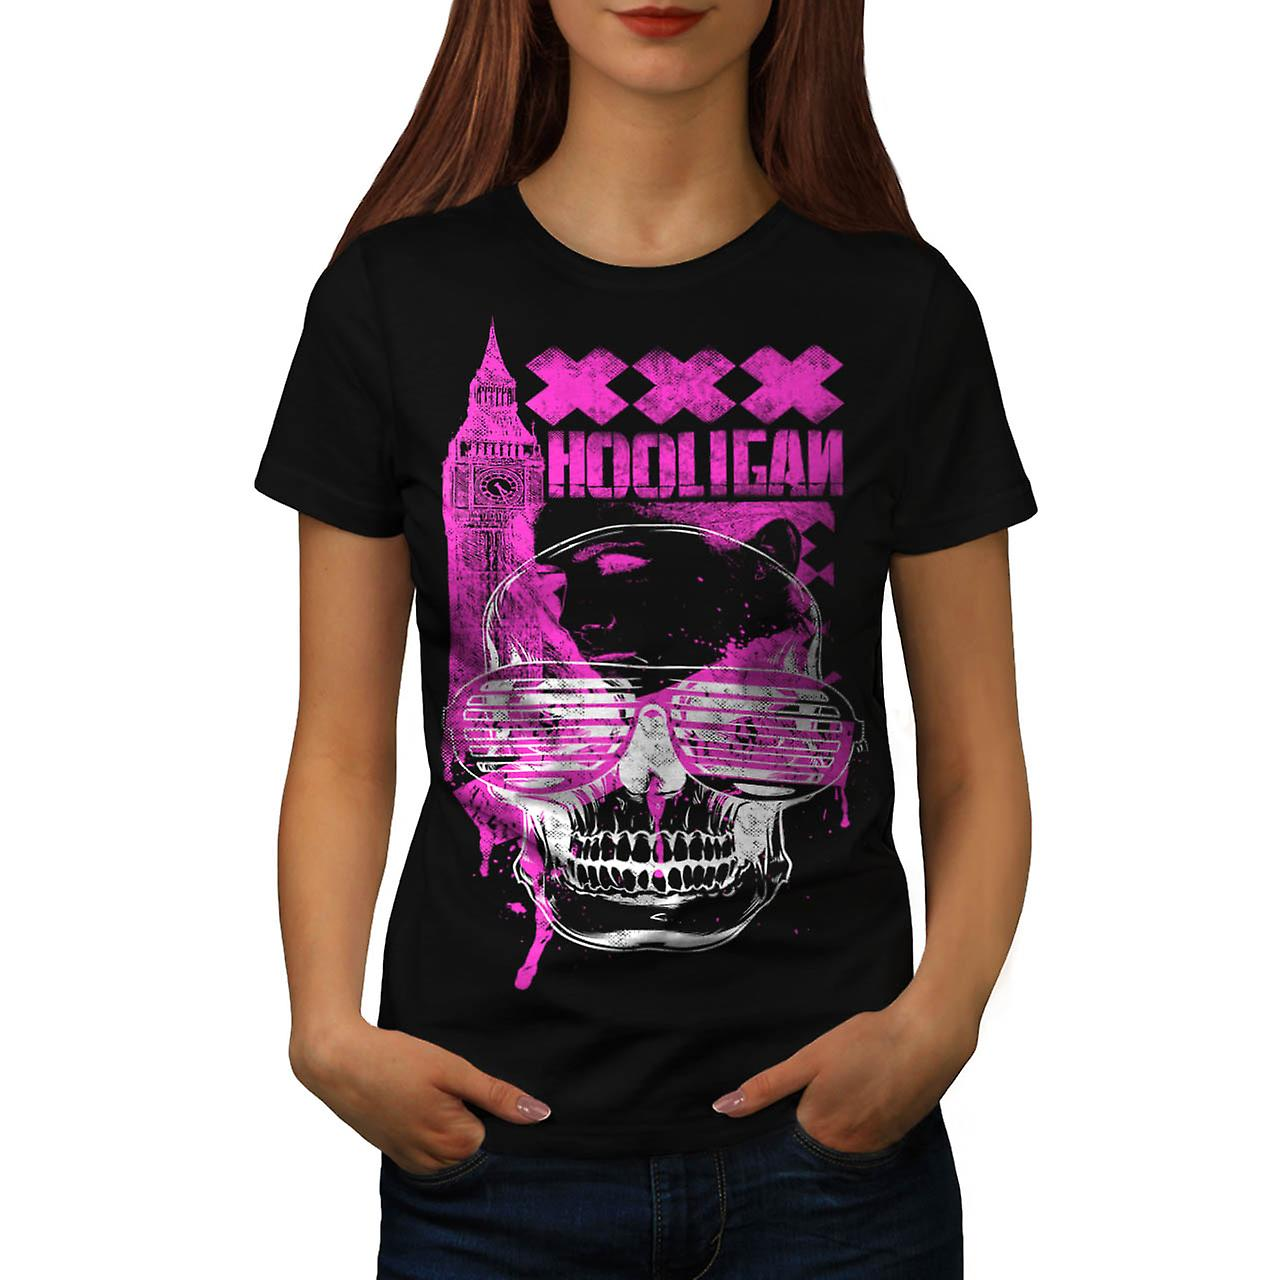 DJ Hooligan Schädel XXX London UK Frauen T-shirt schwarz | Wellcoda